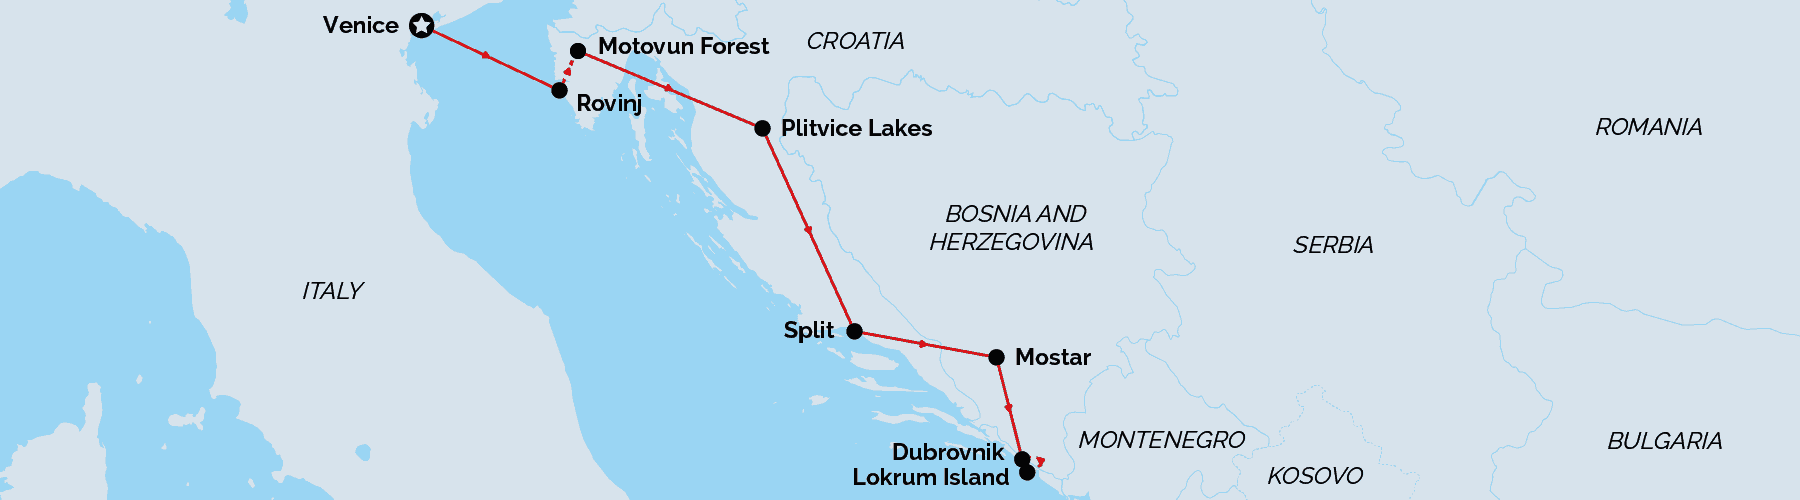 Route Map Venice & Croatia Private Tour